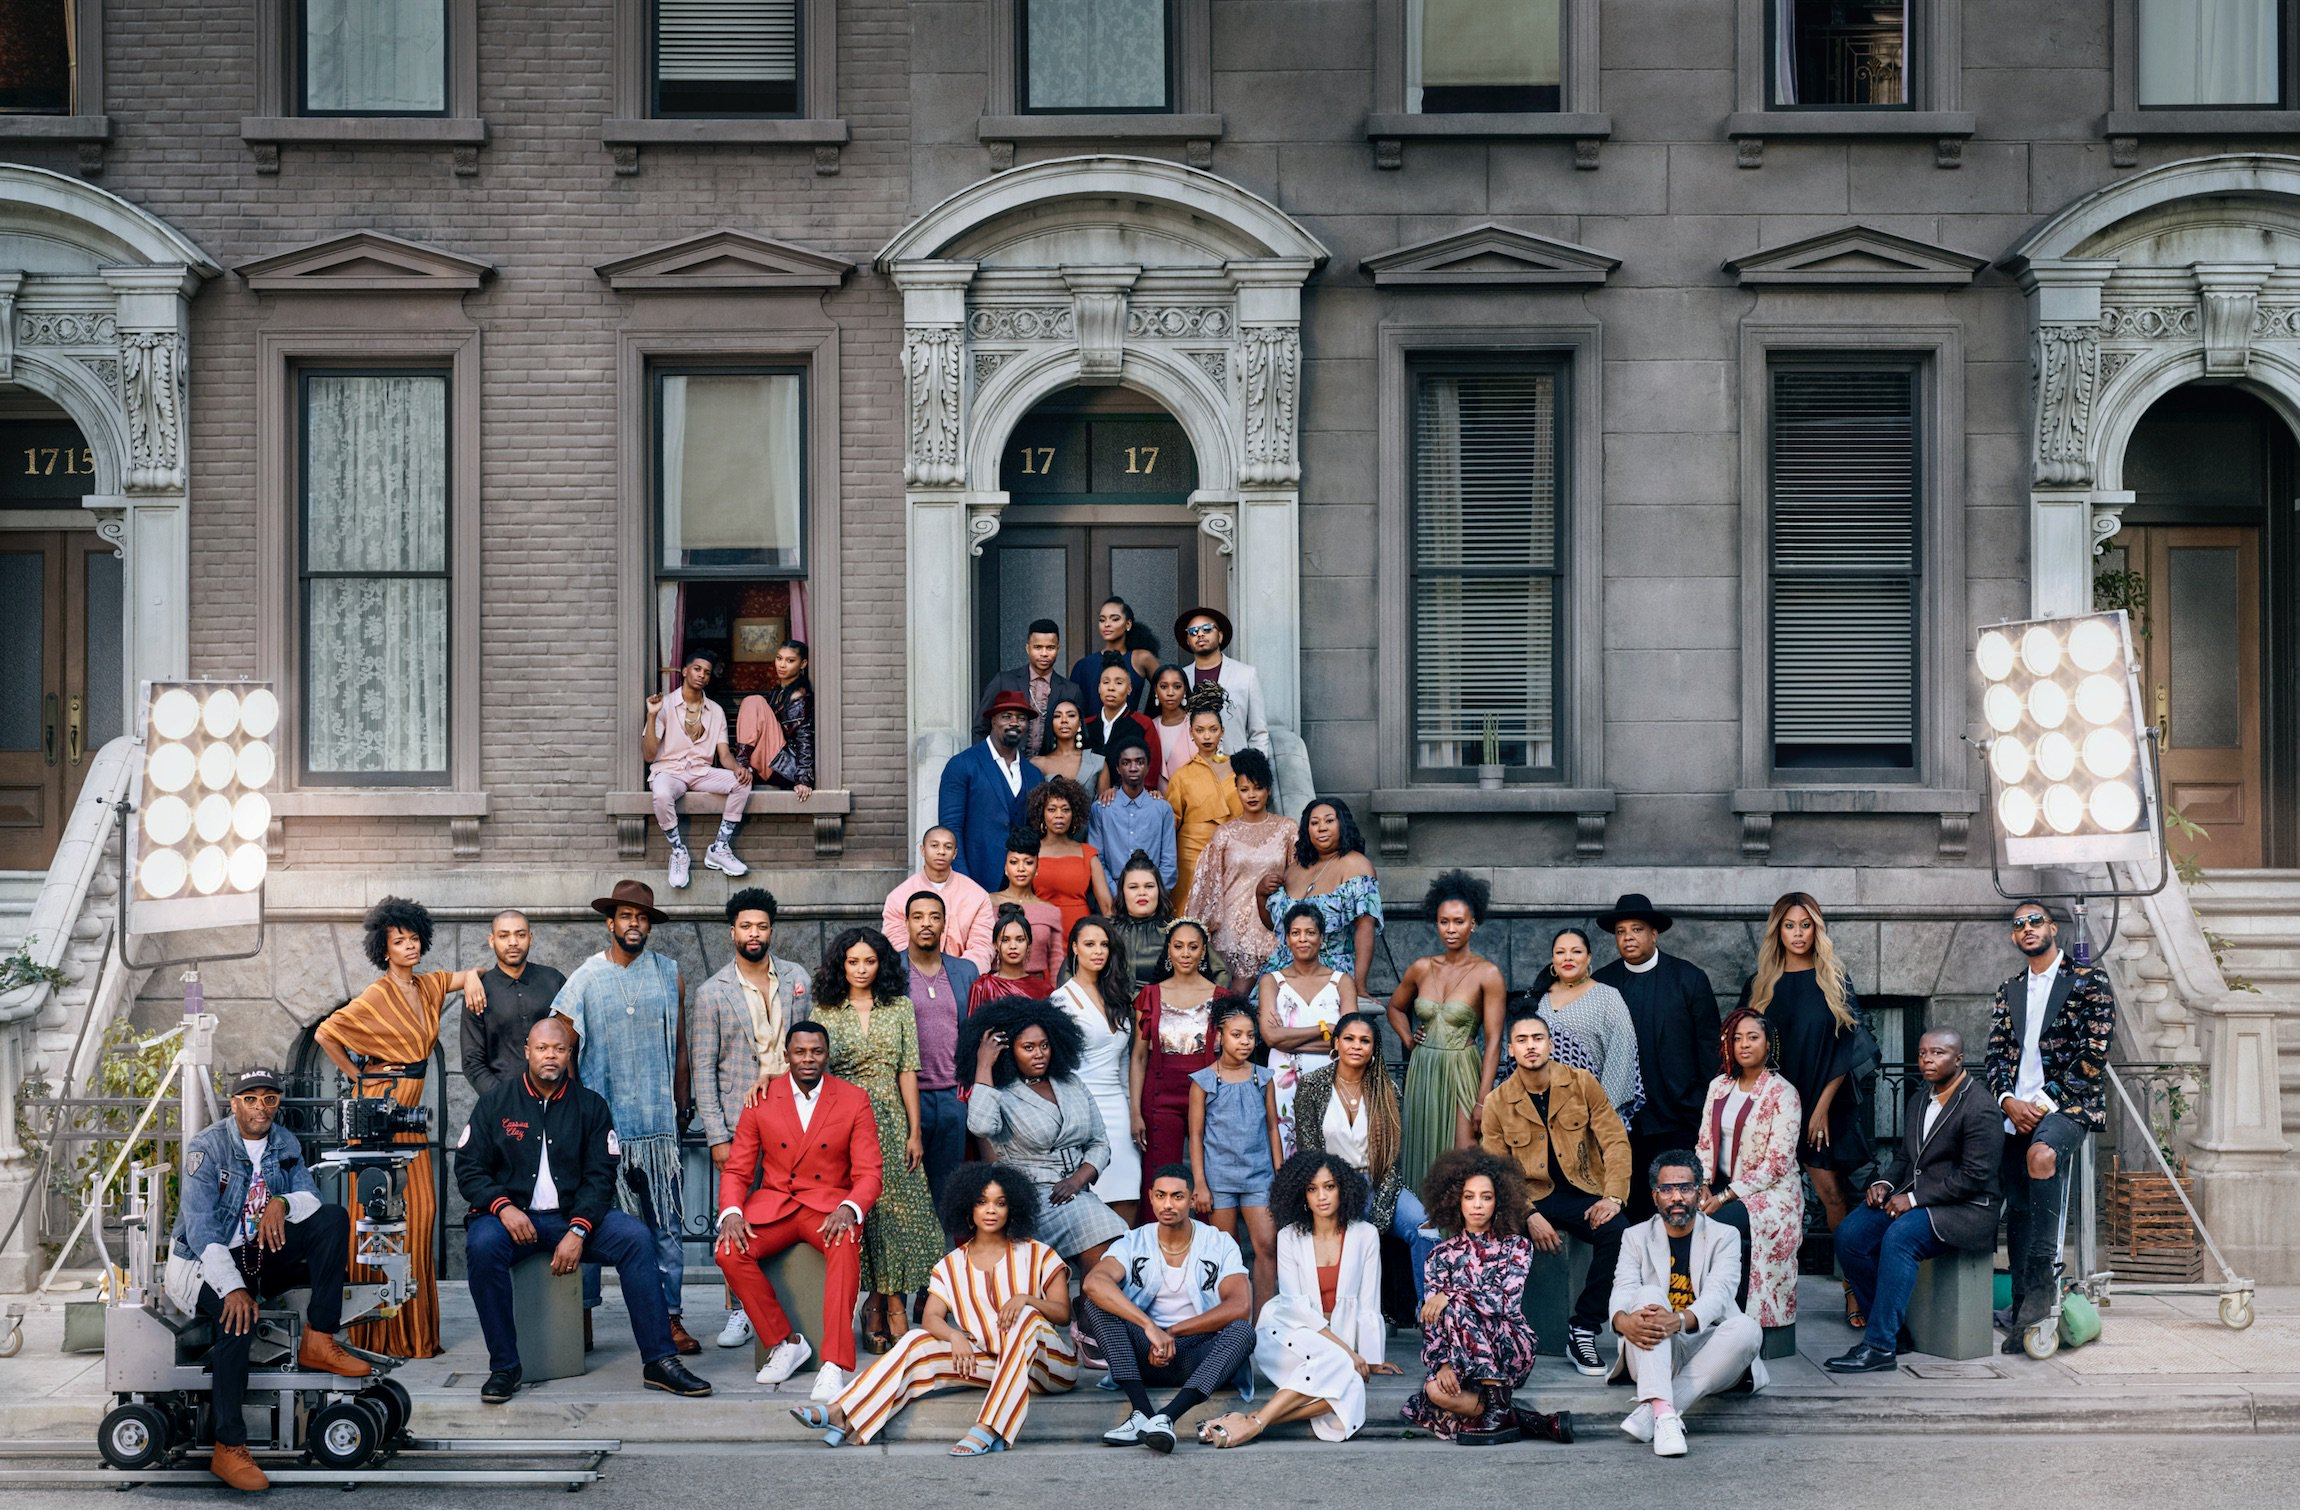 Spike Lee, Nia Long, Rev Run & More Recreate 'A Great Day In Harlem' Photo